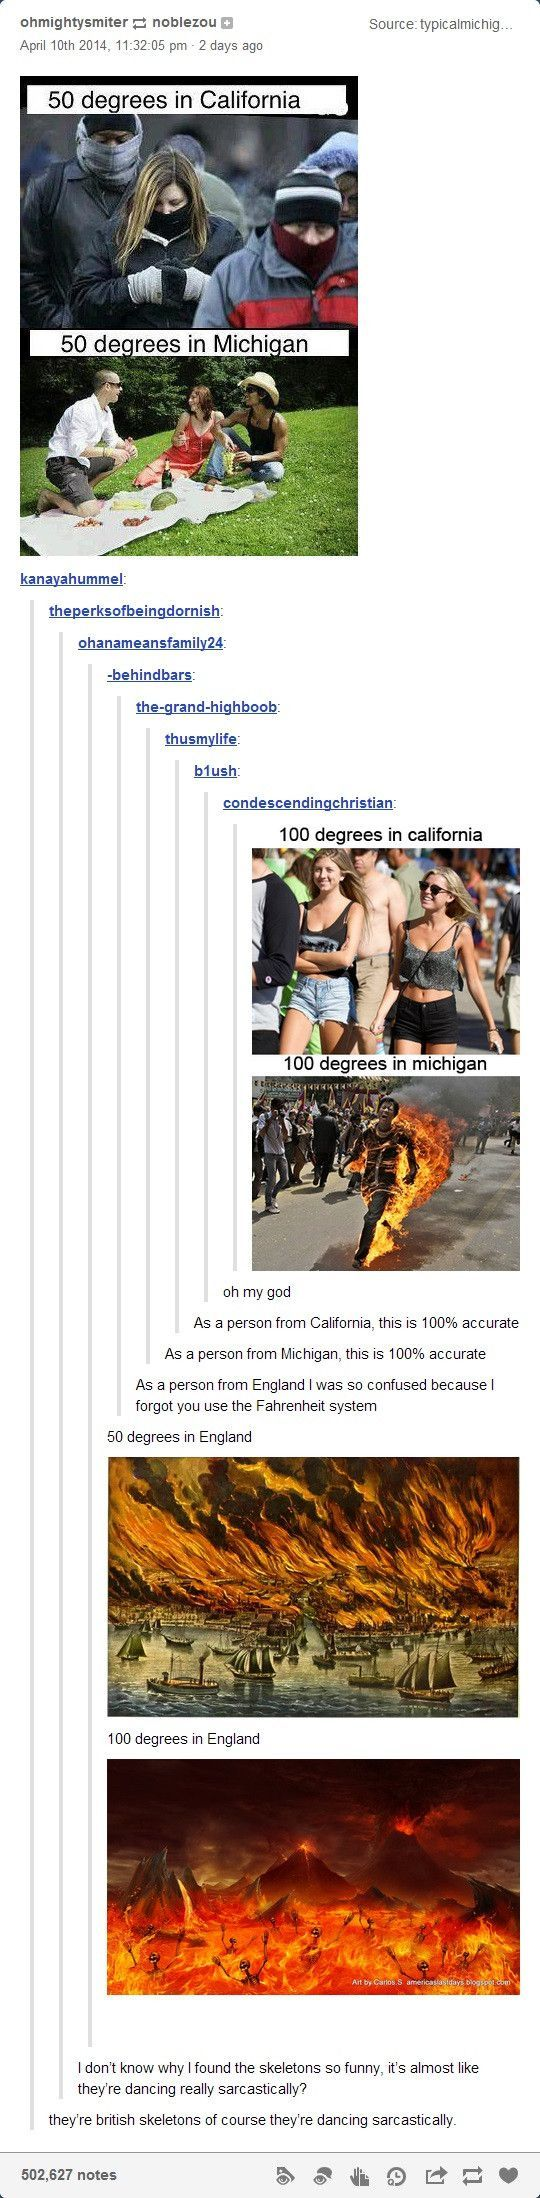 Those skeletons though. Us Americans and our Fahrenheit